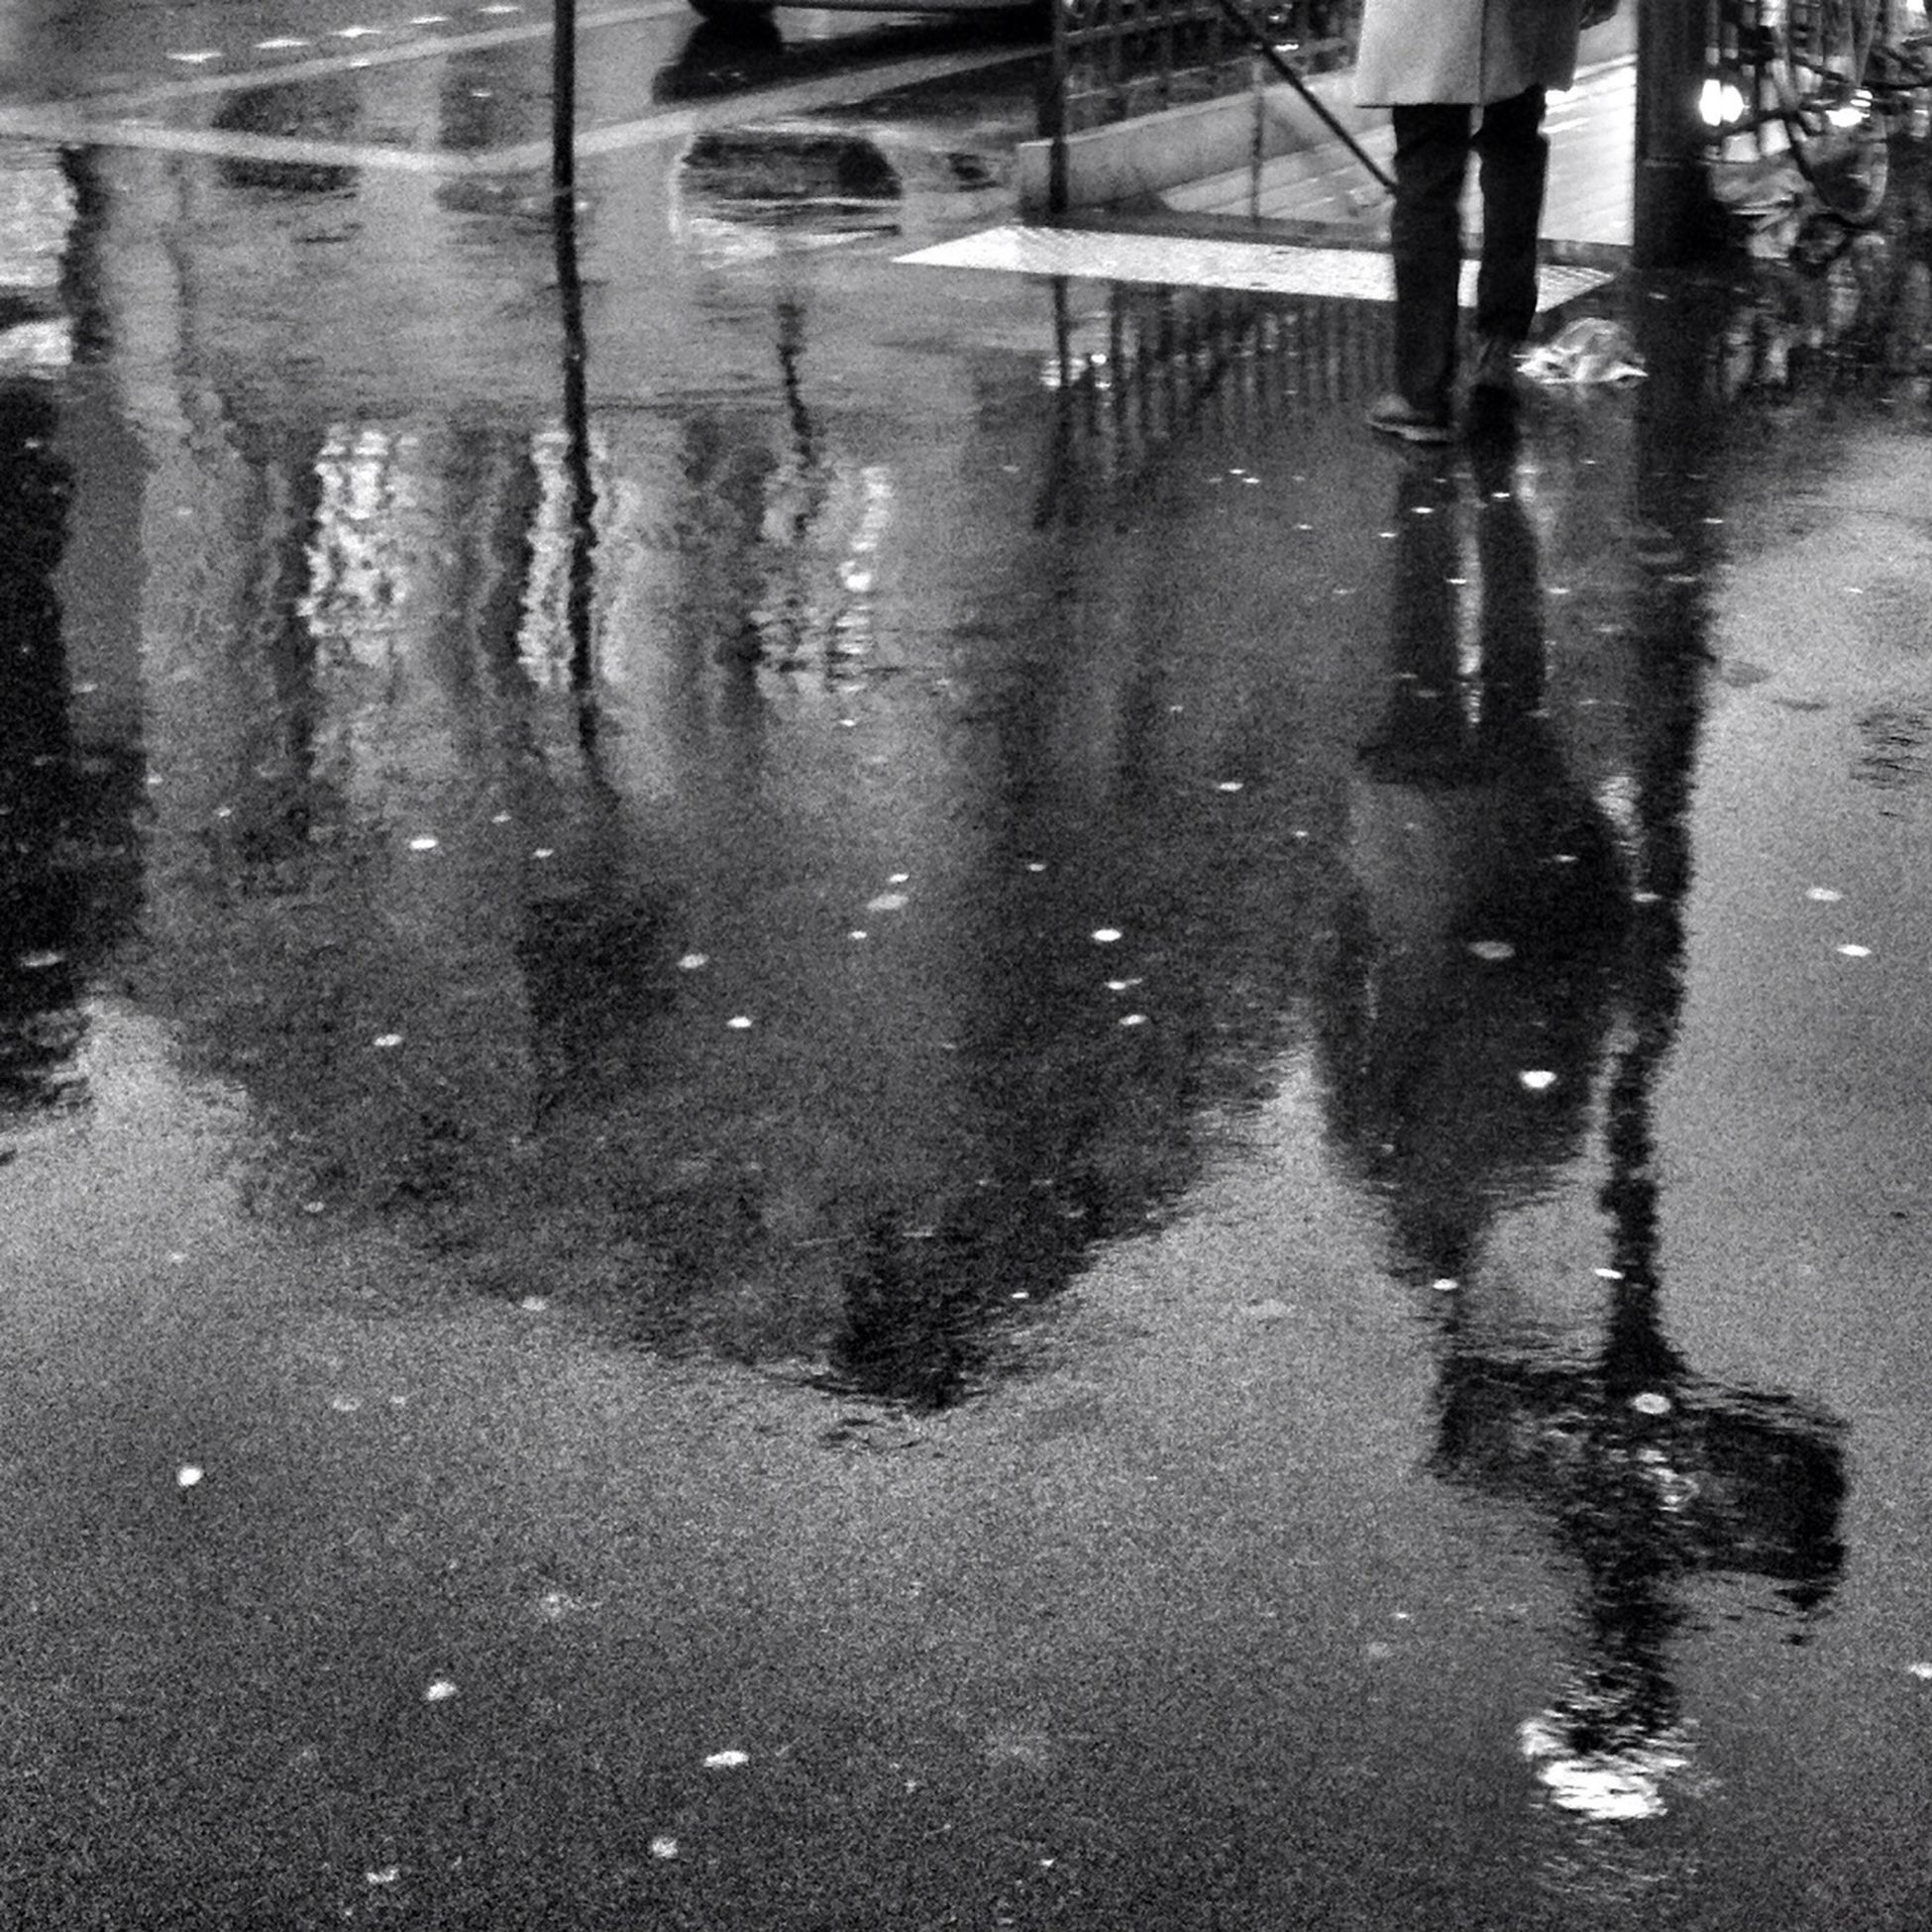 wet, water, rain, street, walking, reflection, puddle, low section, lifestyles, season, monsoon, weather, road, men, motion, leisure activity, rainy season, person